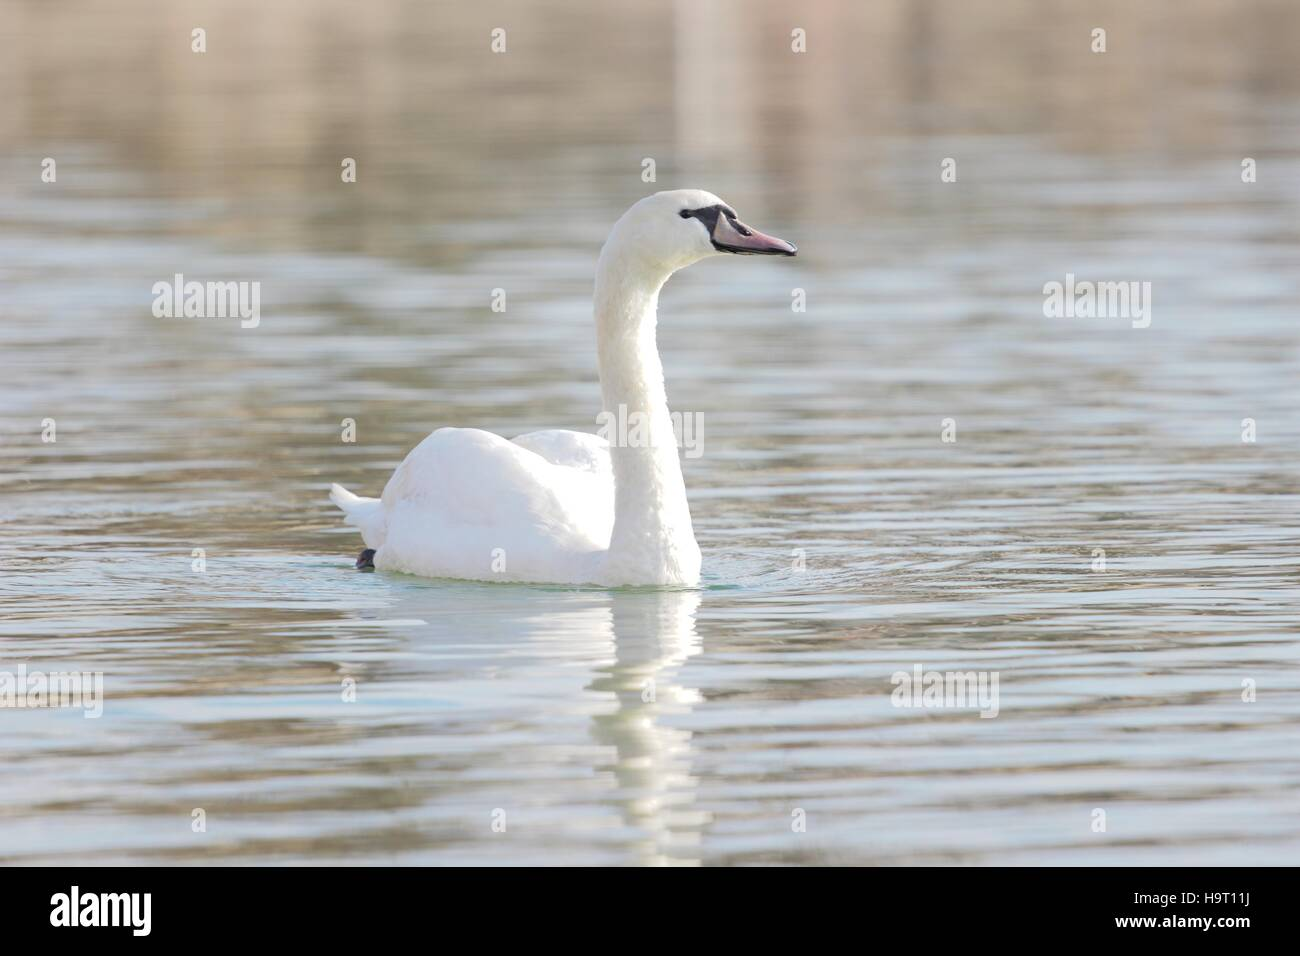 Mute swan (Cygnus olor) on the lake - Stock Image